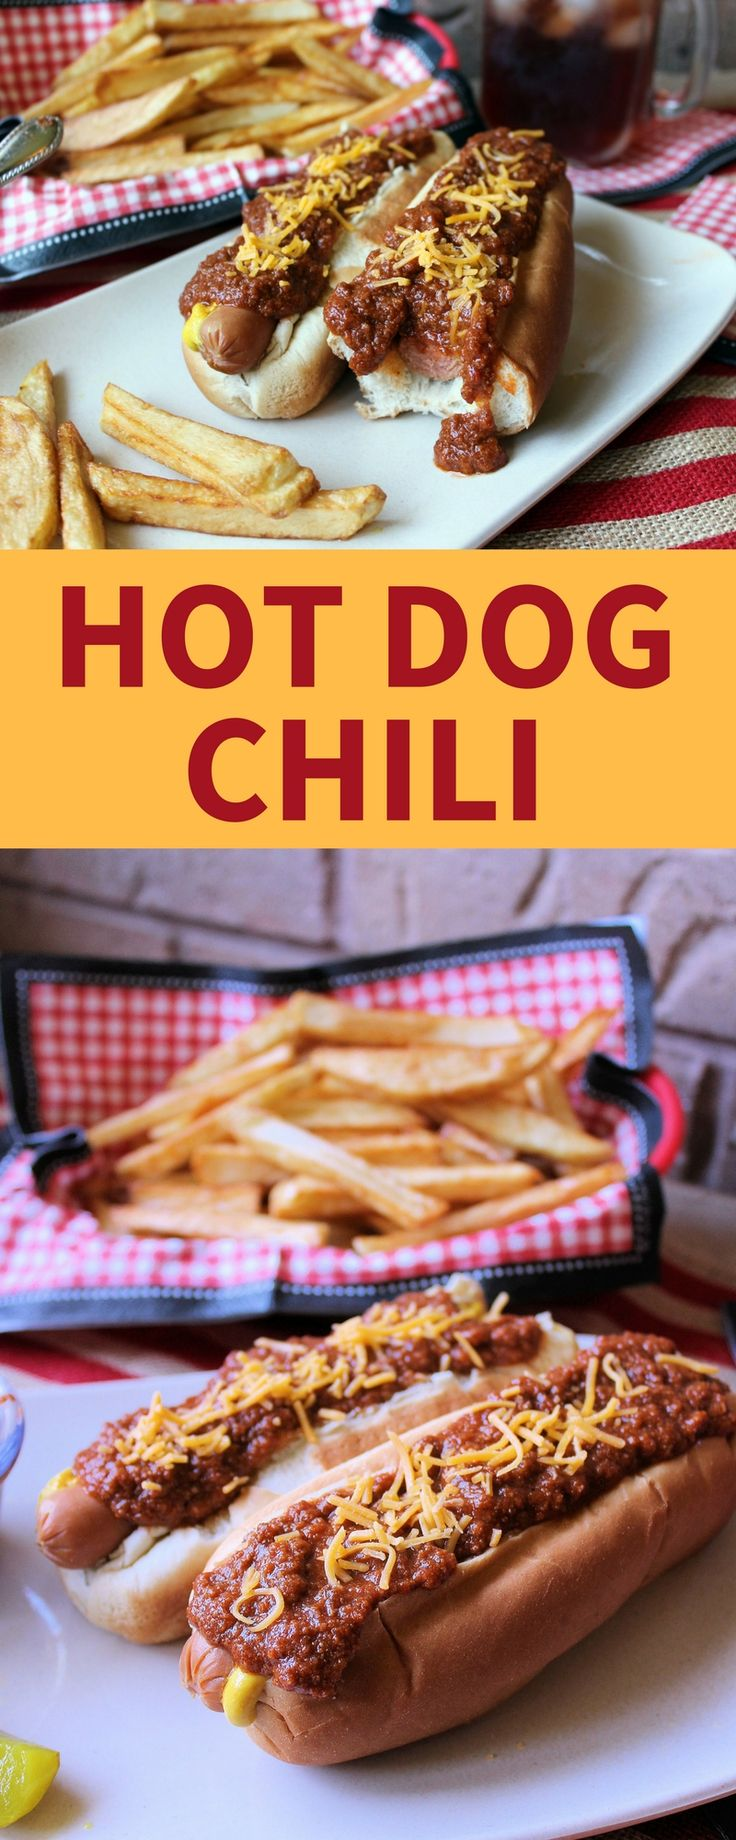 Homemade hot dog chili is easy to make and ready in just 5 steps!